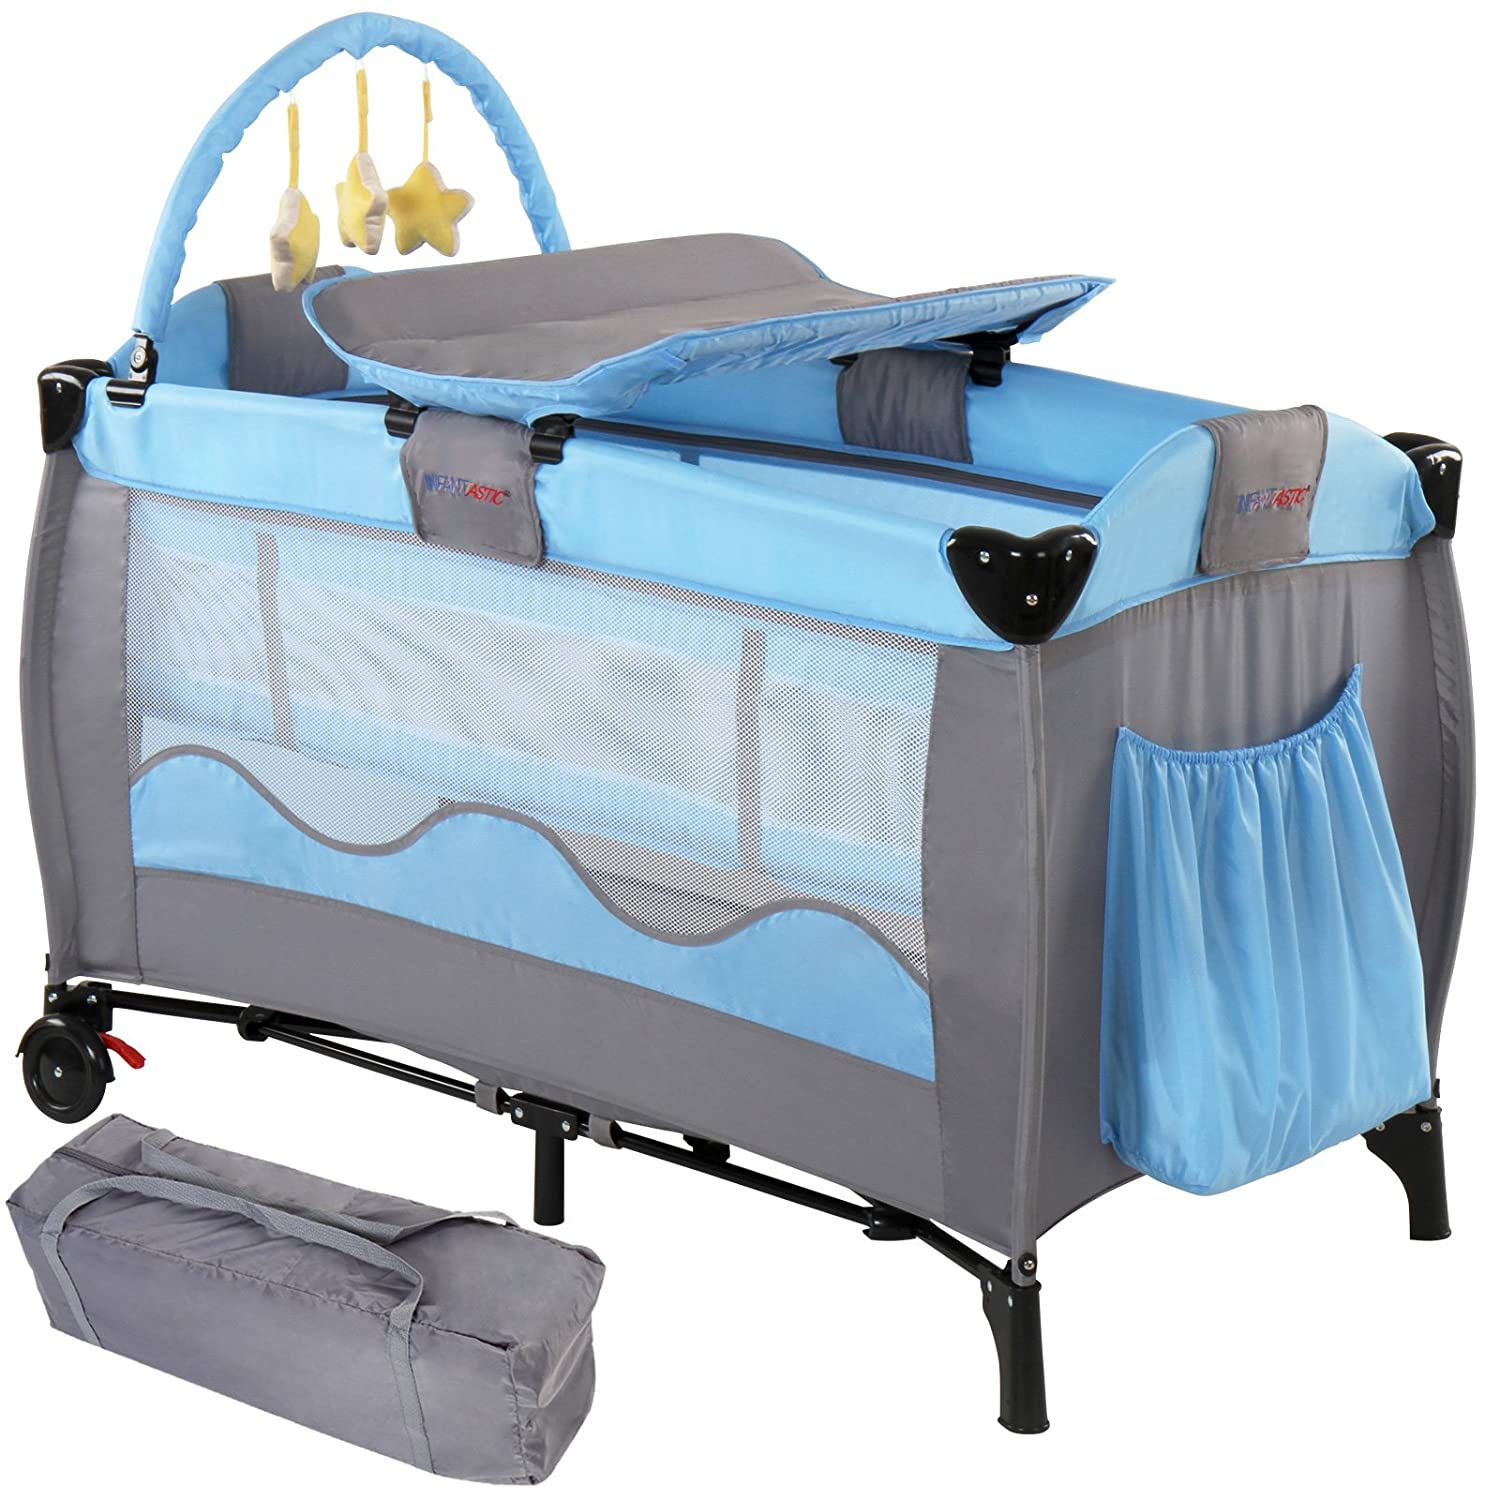 Infantastic Baby Bed Travel Cot Portable Child Nursery Furniture with Toys - Blue FF Europe krb01blau